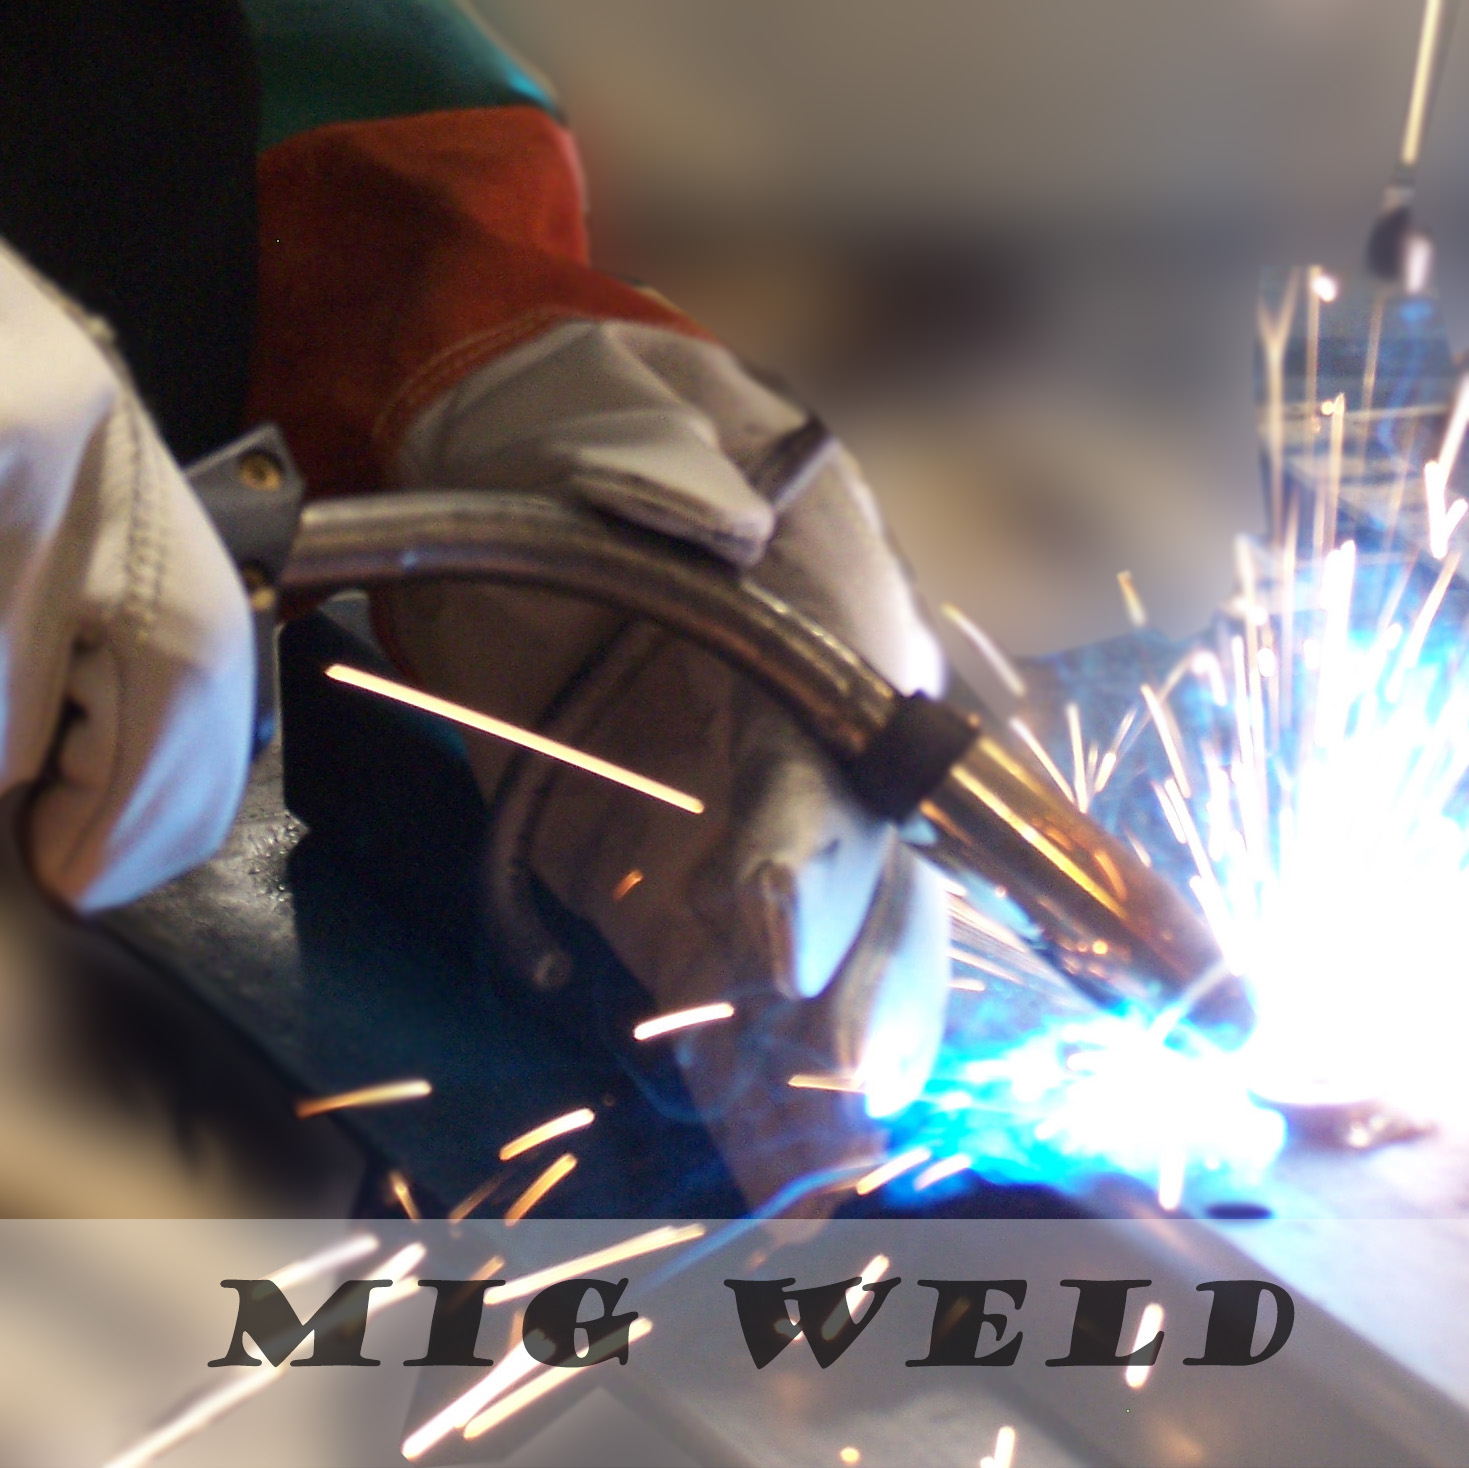 why both mig tig welding a fabricators while both end results of mig and tig welding are the same in that the metal pieces or parts are joined together by heating the surfaces to the point of